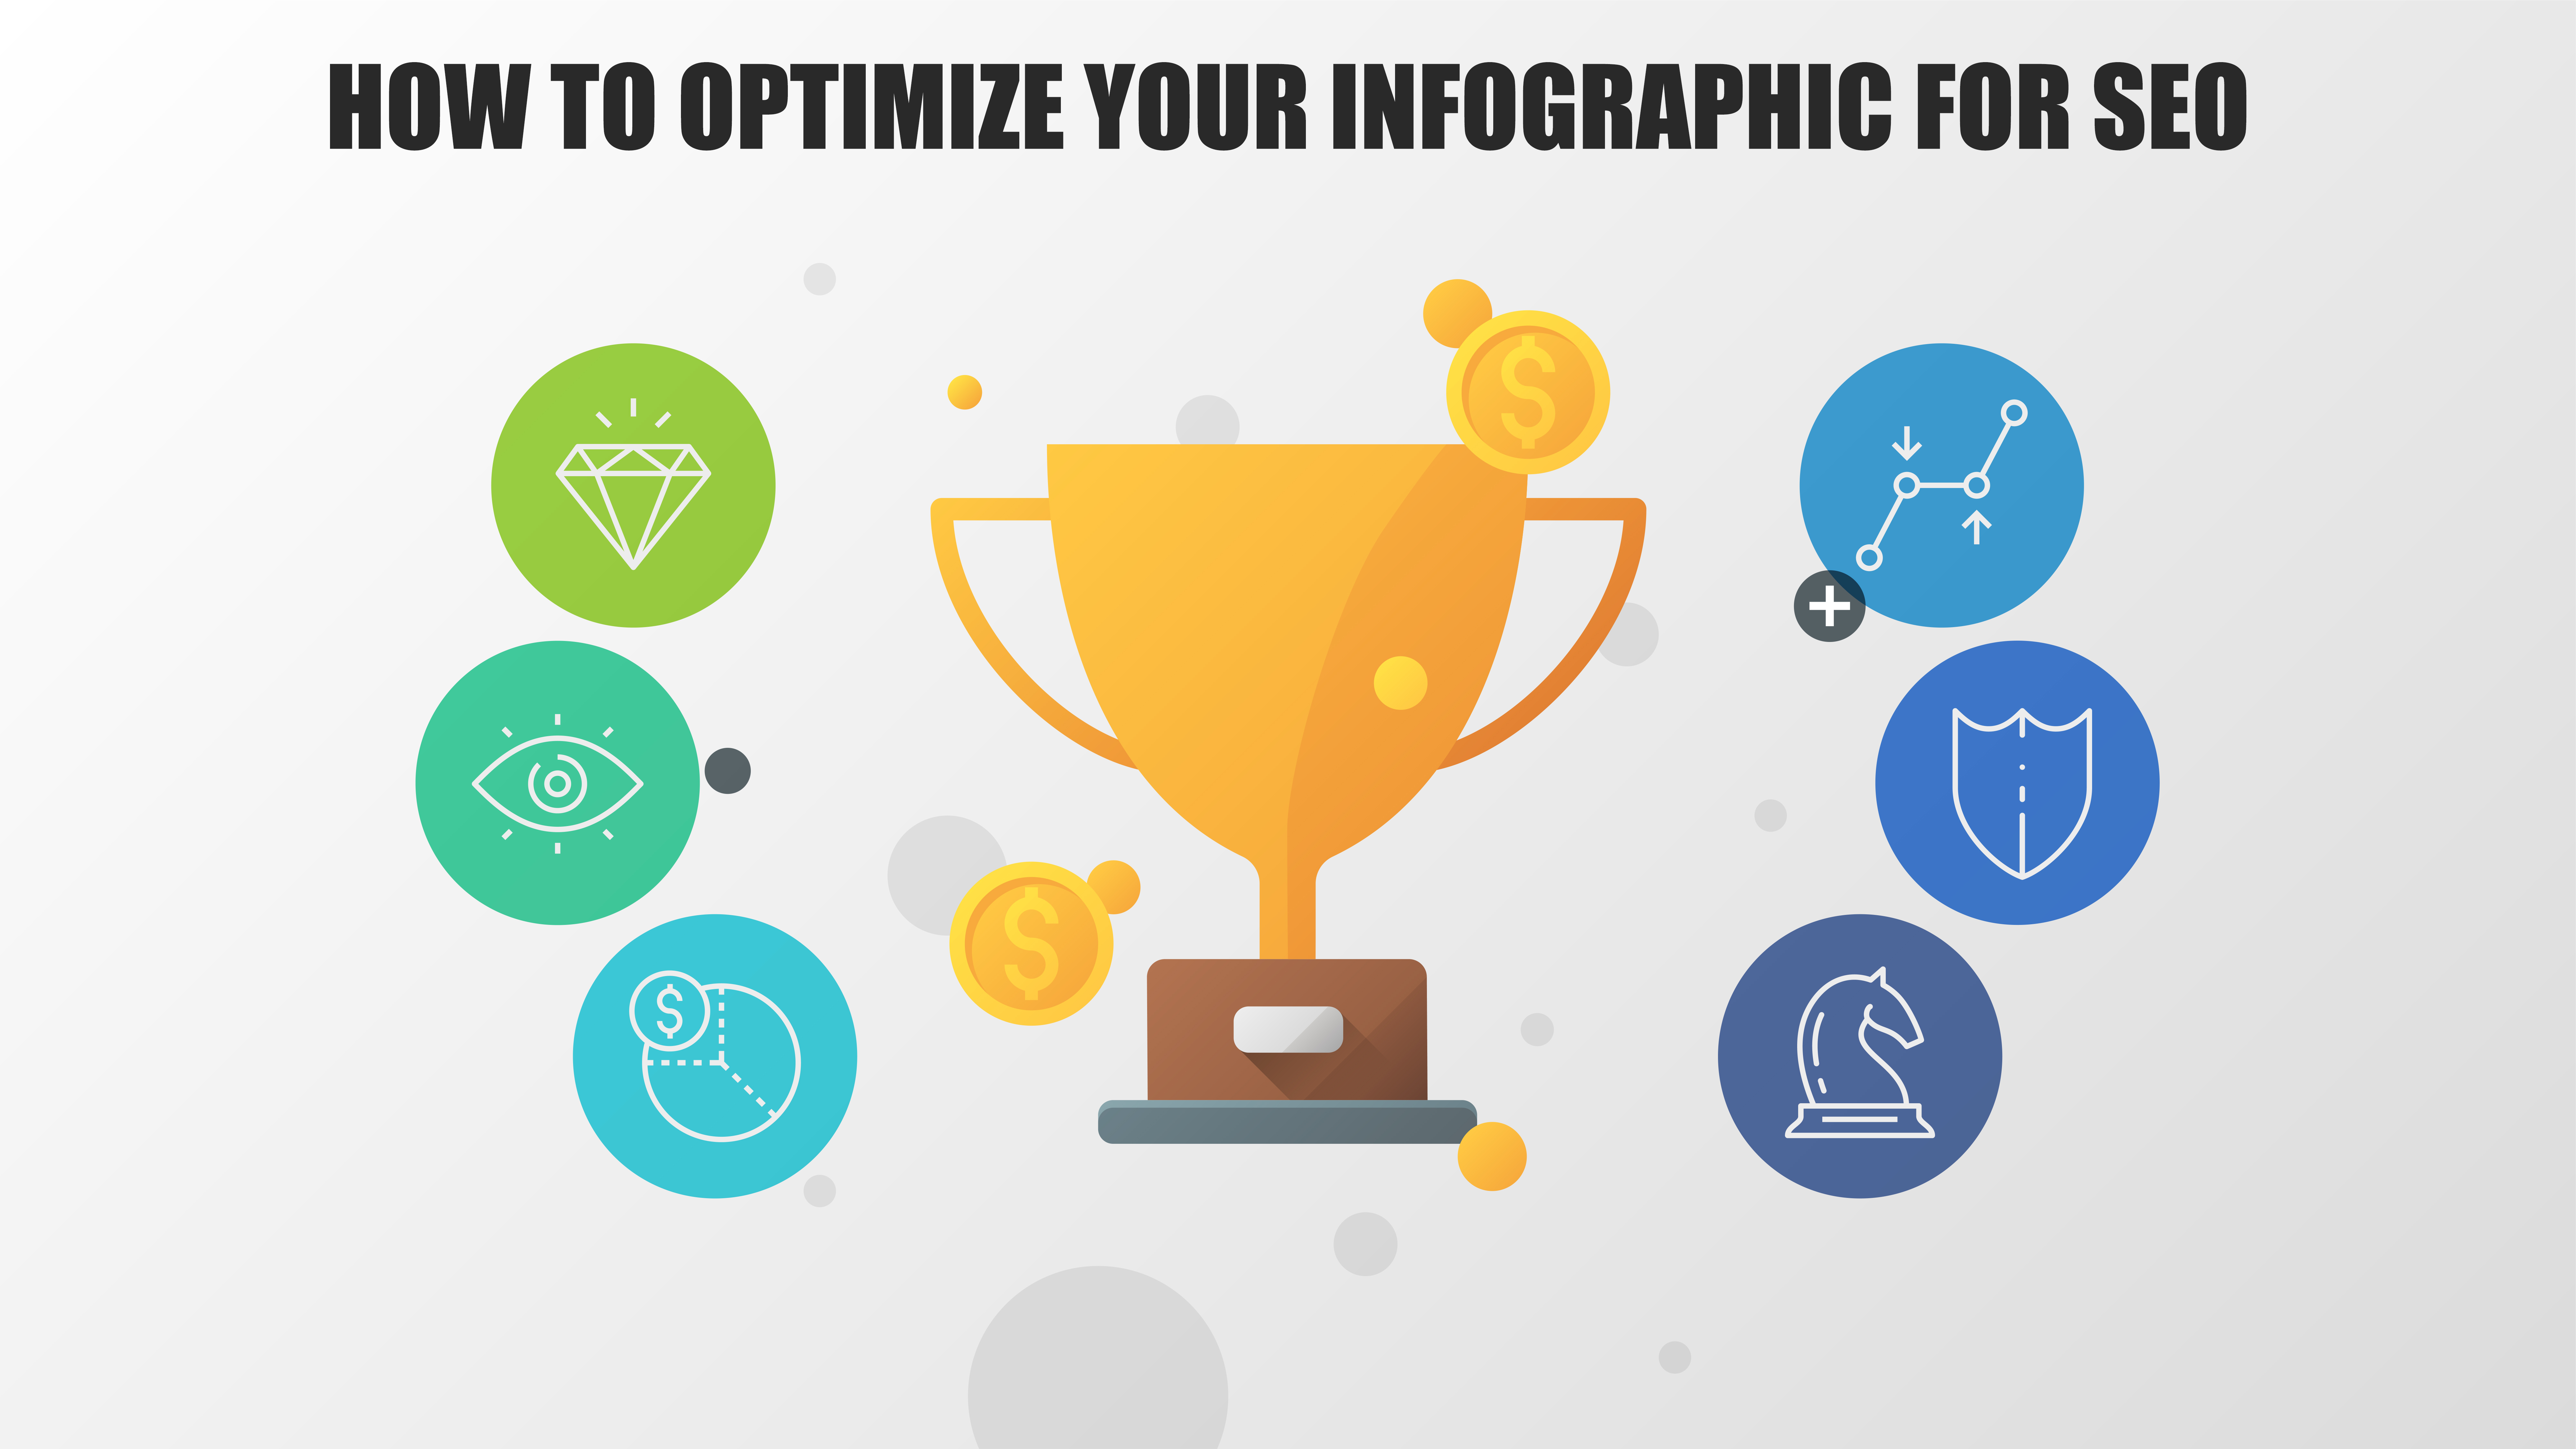 How To Optimize Your Infographic For SEO